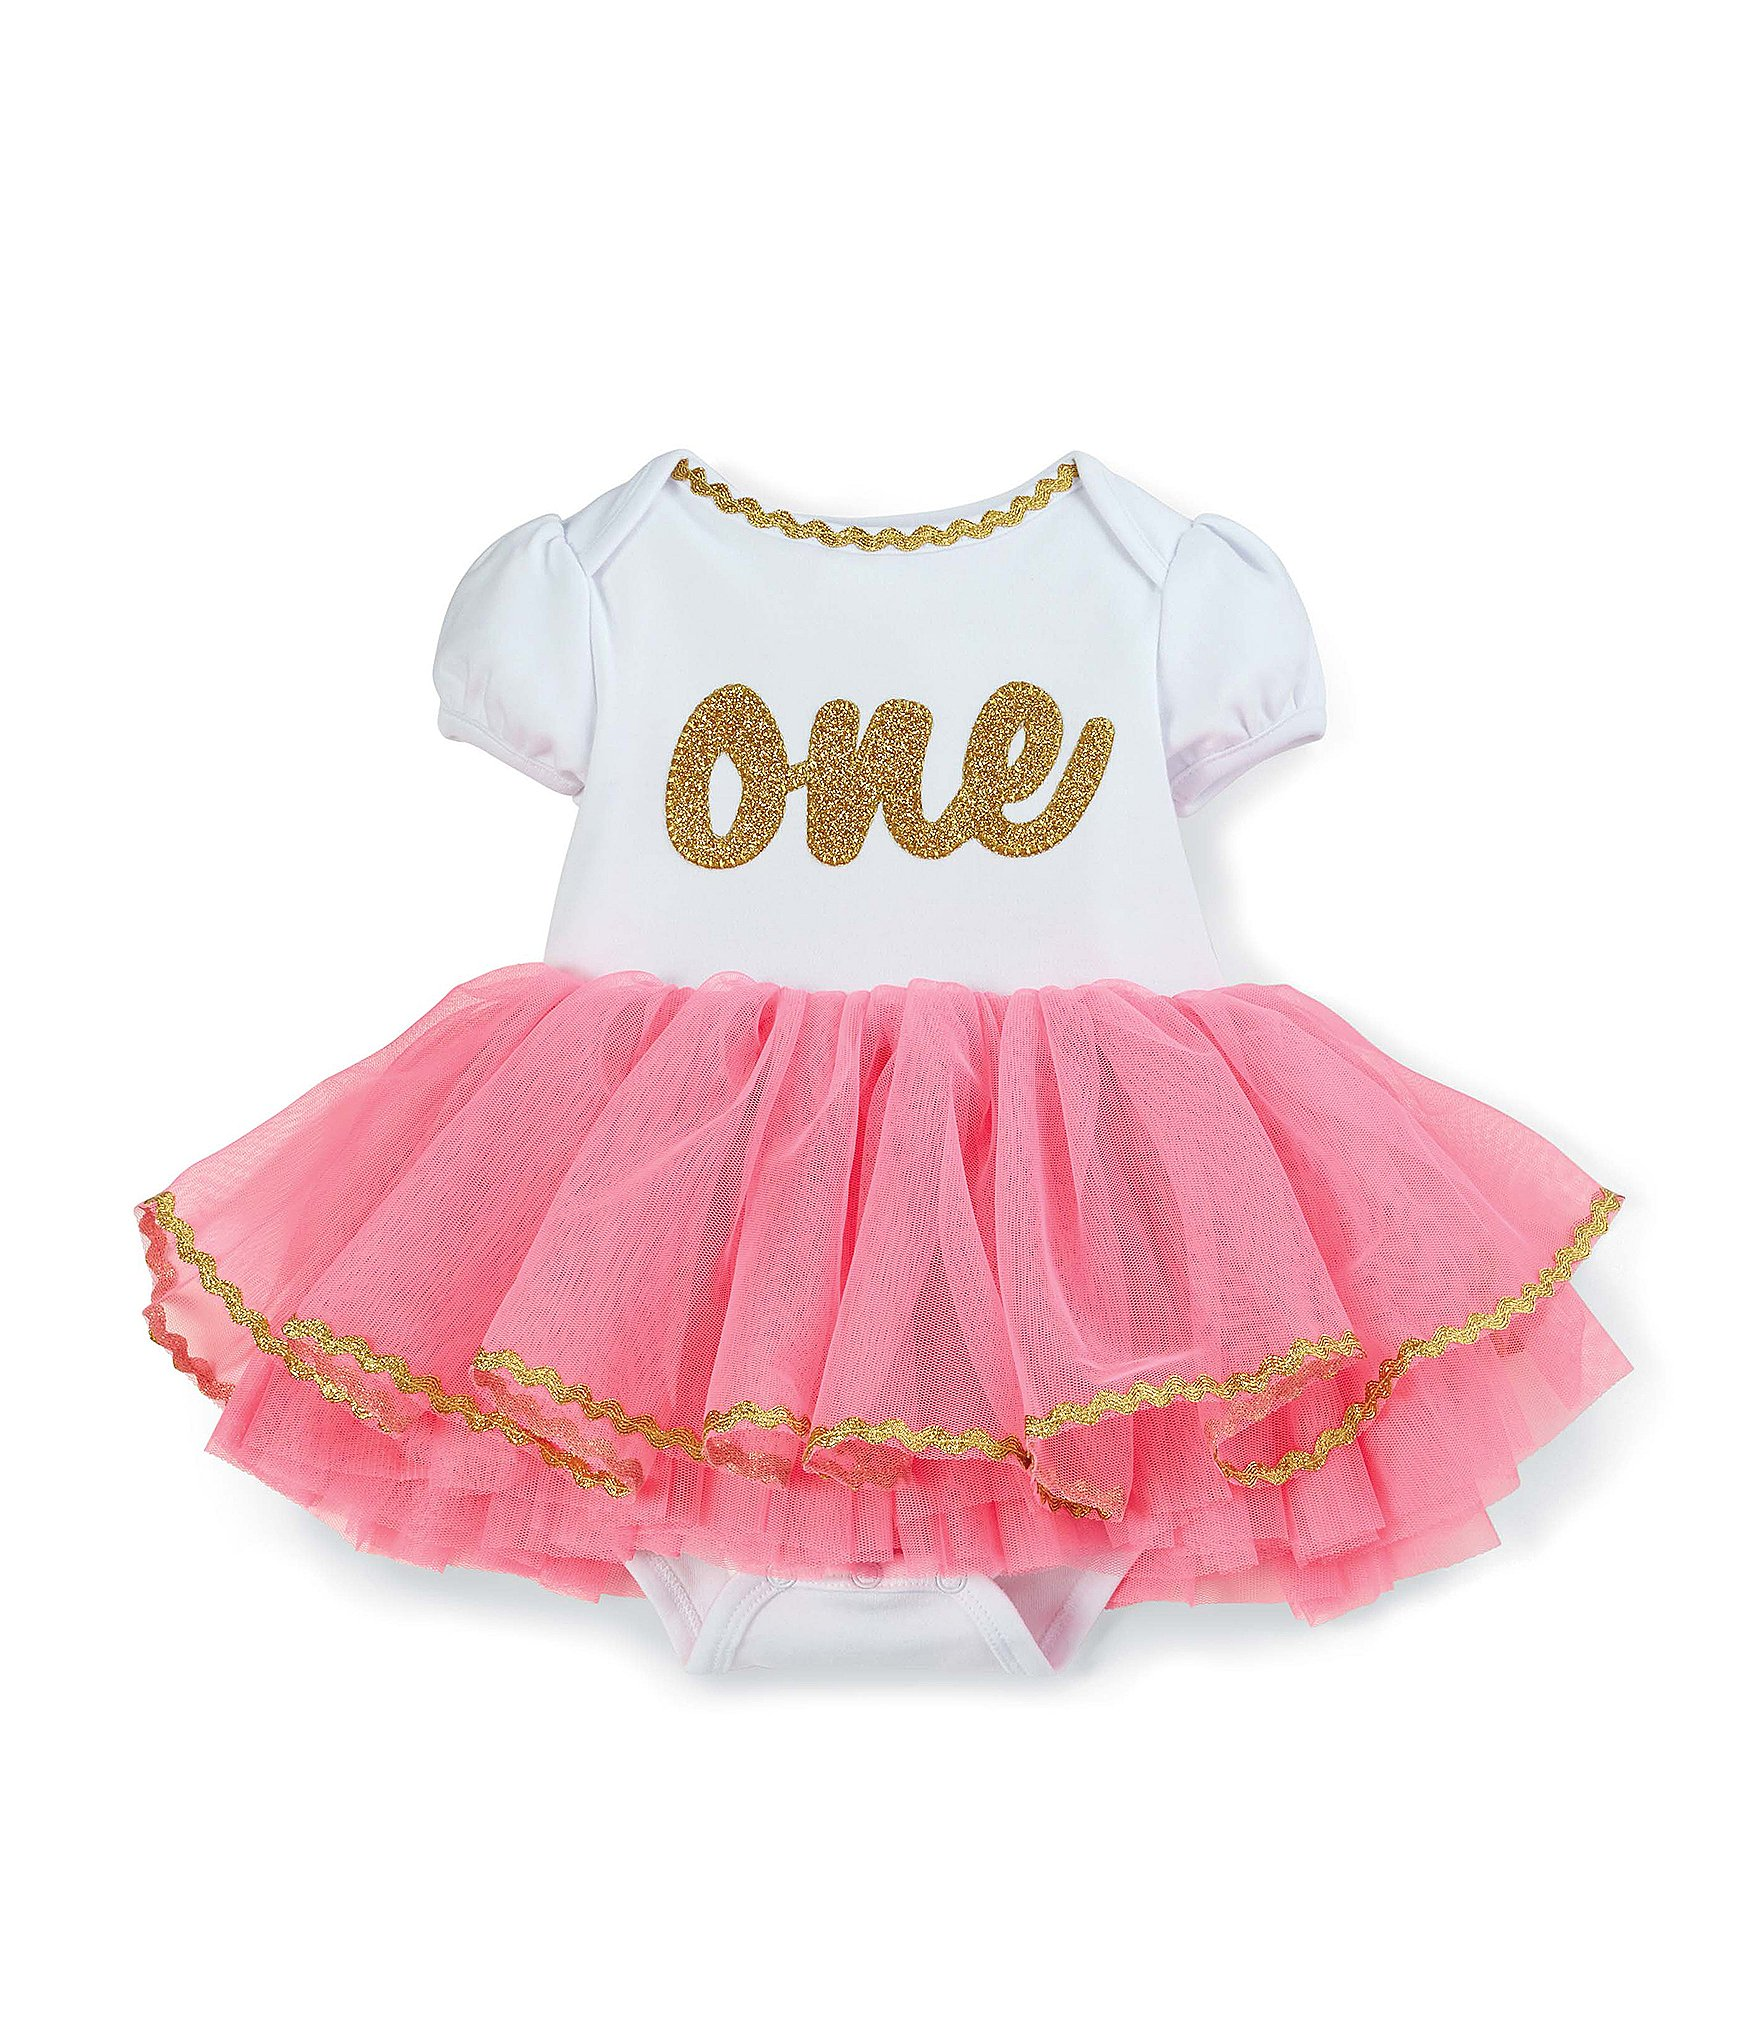 Mud Pie Clothing is on sale at viplikecuatoi.ml, a blue ribbon retailer of clothing and gifts from Mud Pie Baby & Kids. Here you'll find coupons and free shipping offers on cute MudPie baby outfits from newborn to toddler sizes! We carry a complete line of Mud Pie clothing collections of and offer the guaranteed lowest prices and loyalty rewards.